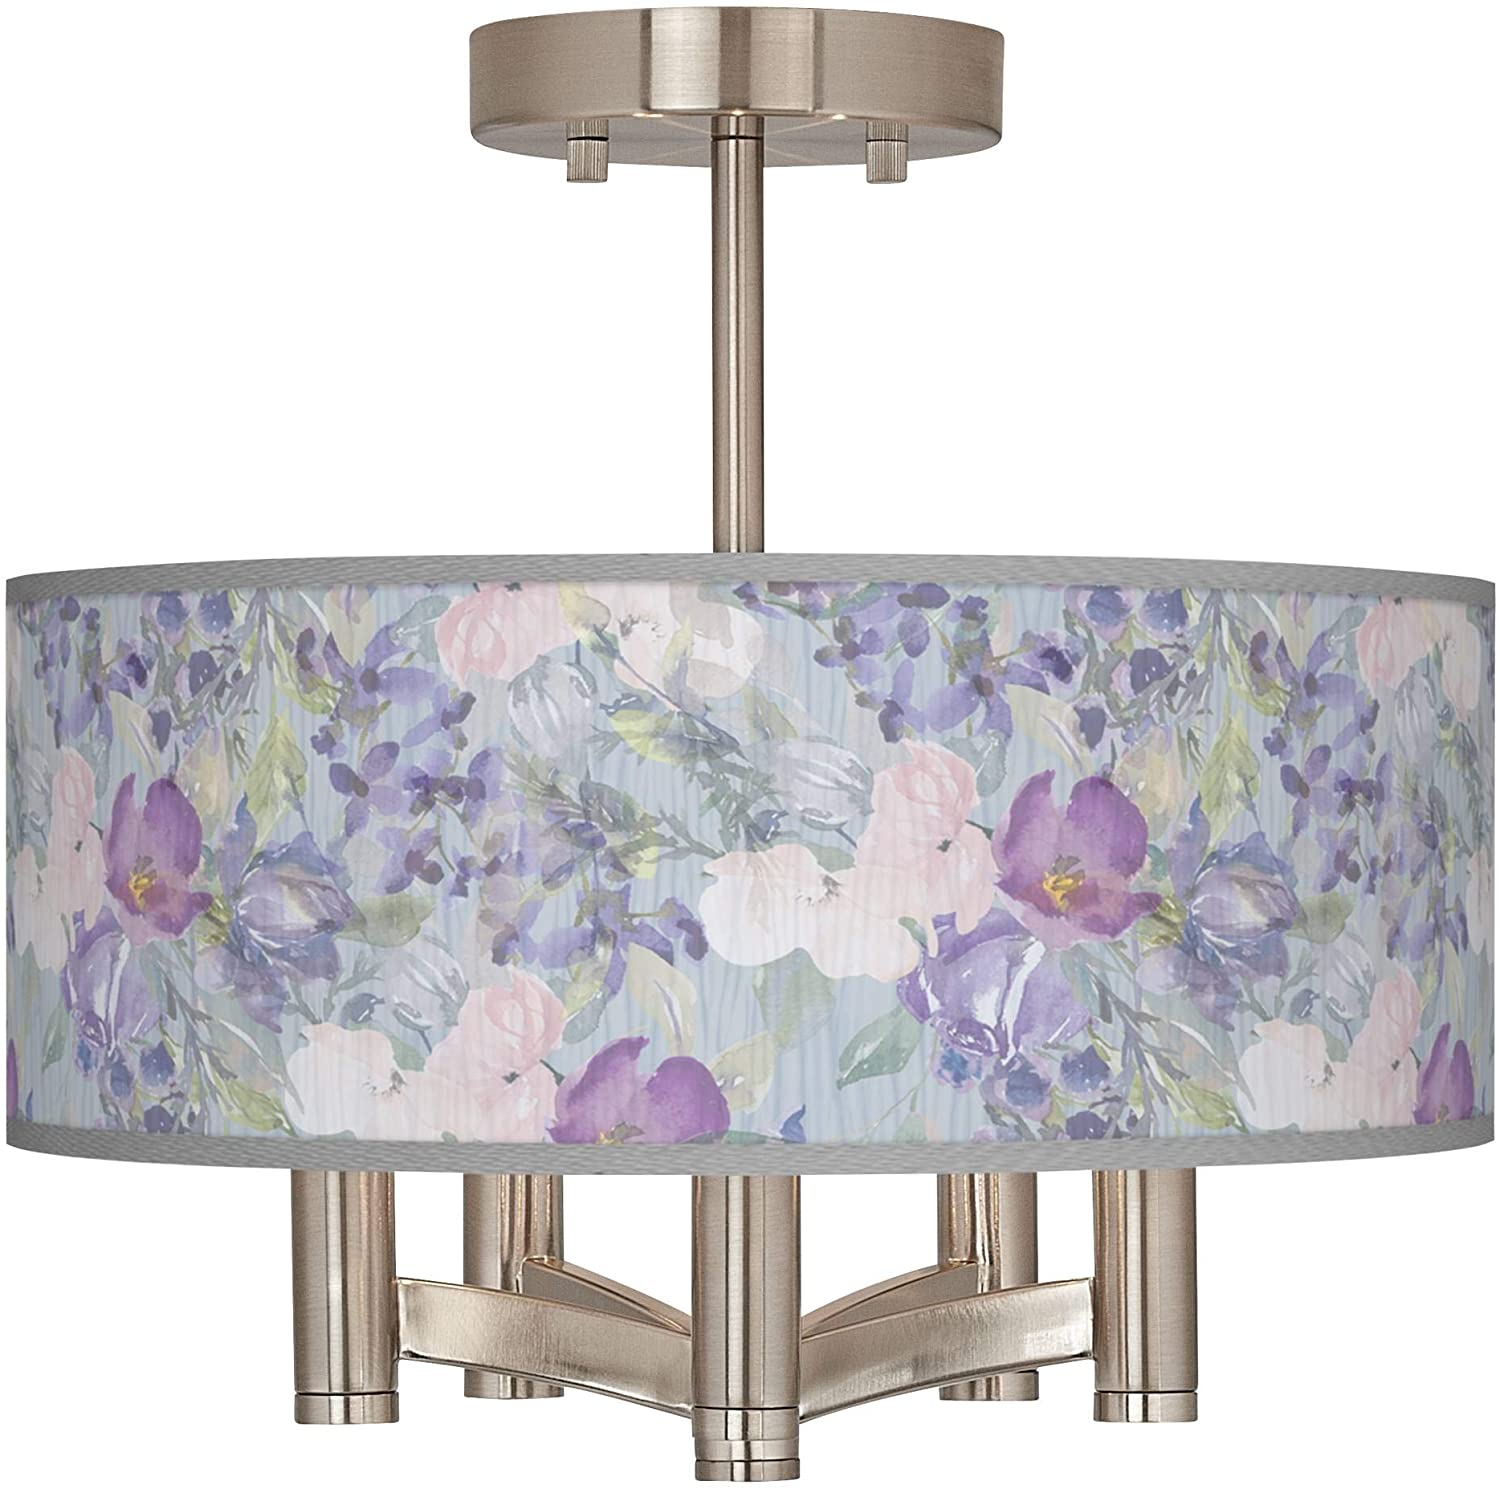 Spring Flowers Ava 5-Light Nickel Ceiling Light - Giclee Glow